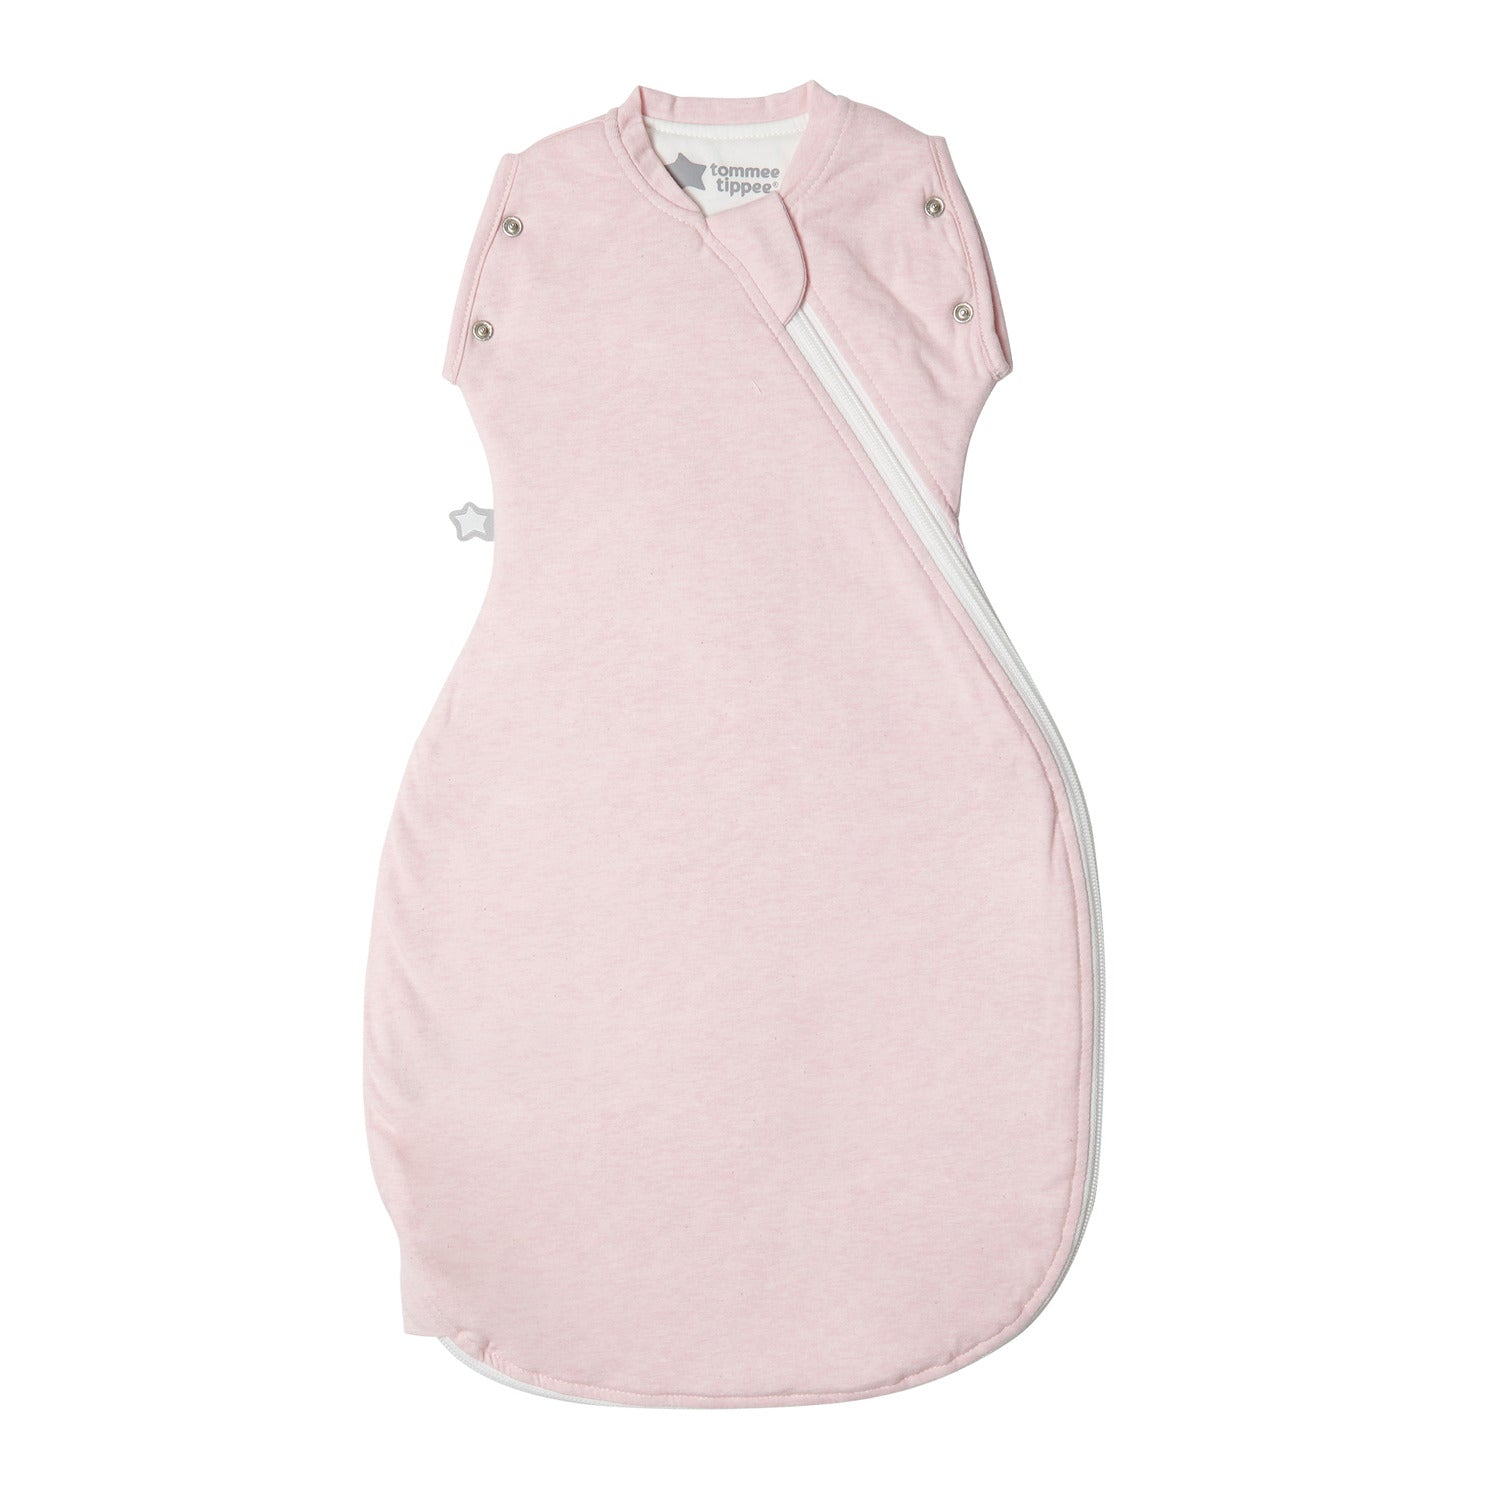 Tommee Tippee - 3-9m 2.5 Tog Pink Marl Snuggle